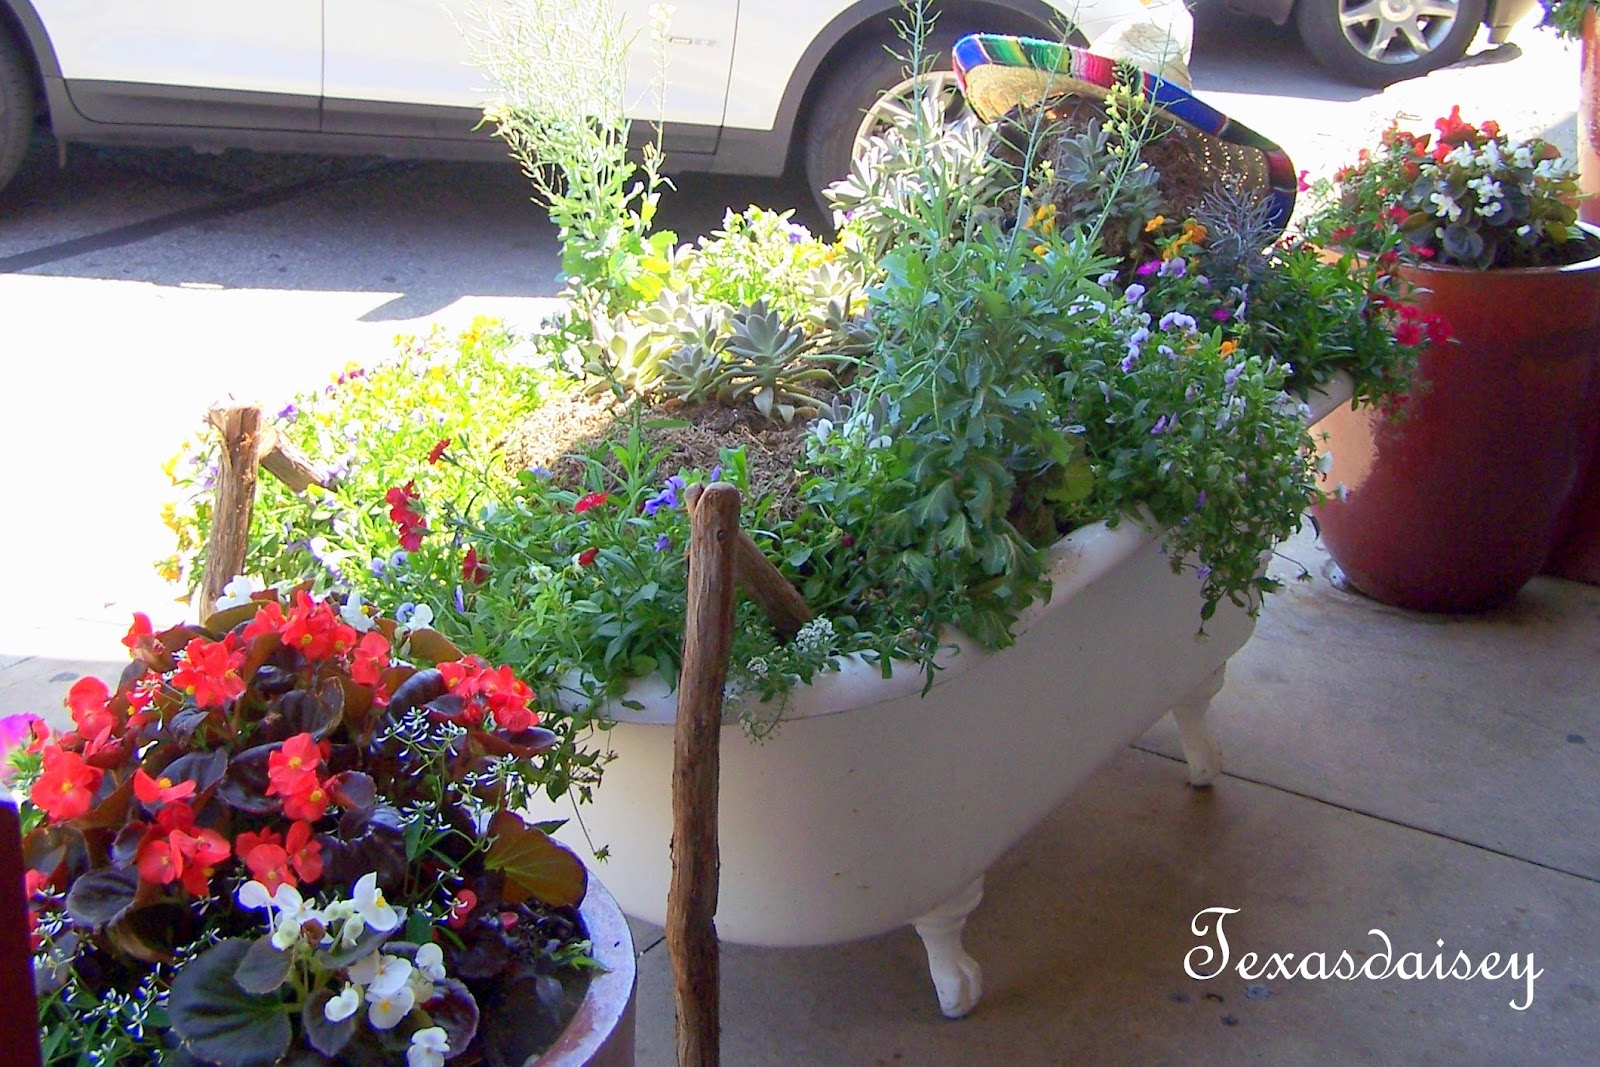 Texasdaisey creations container garden ideas for Container garden ideas